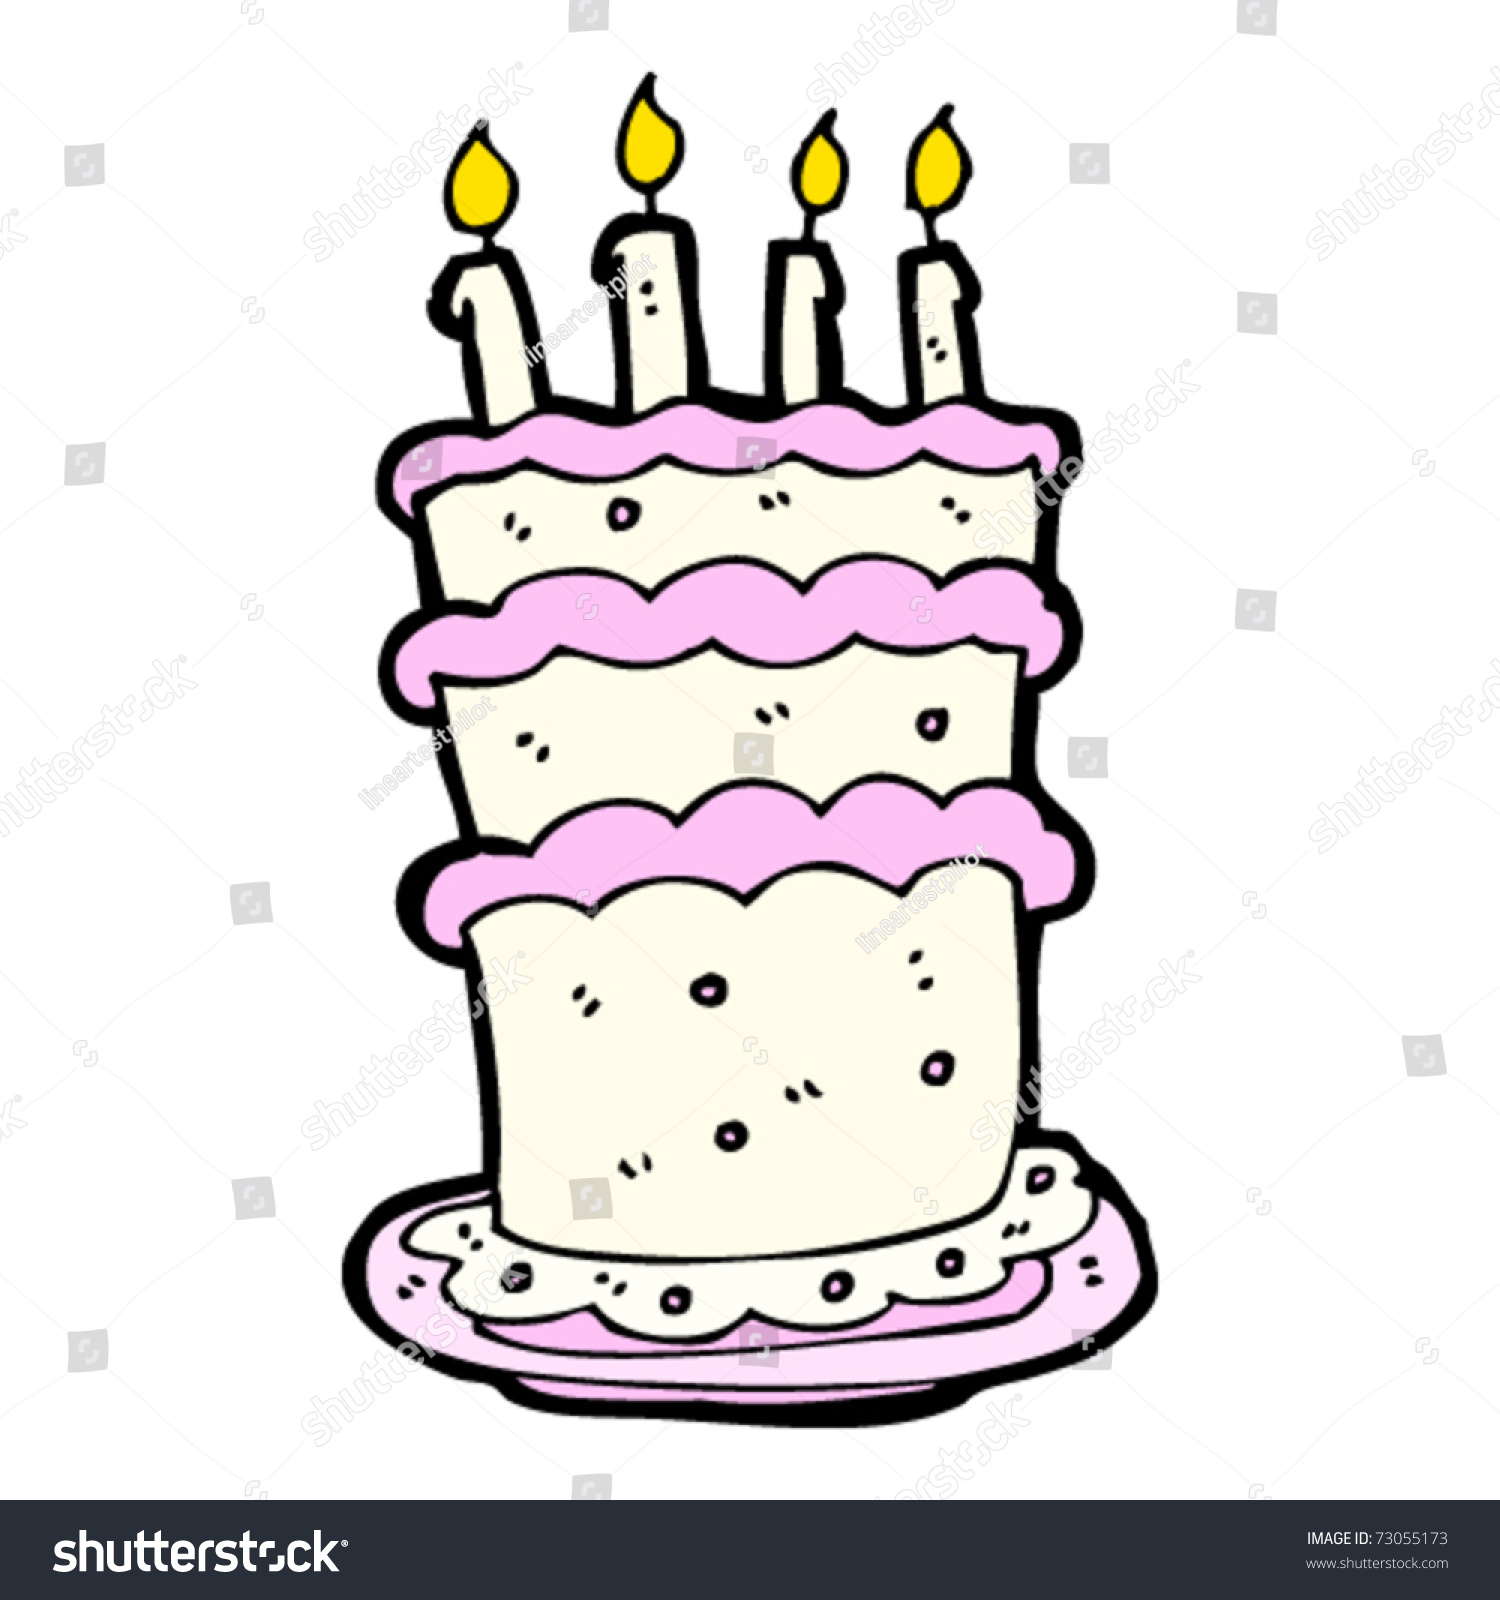 Huge Birthday Cake Cartoon Stock Vector 73055173 Shutterstock